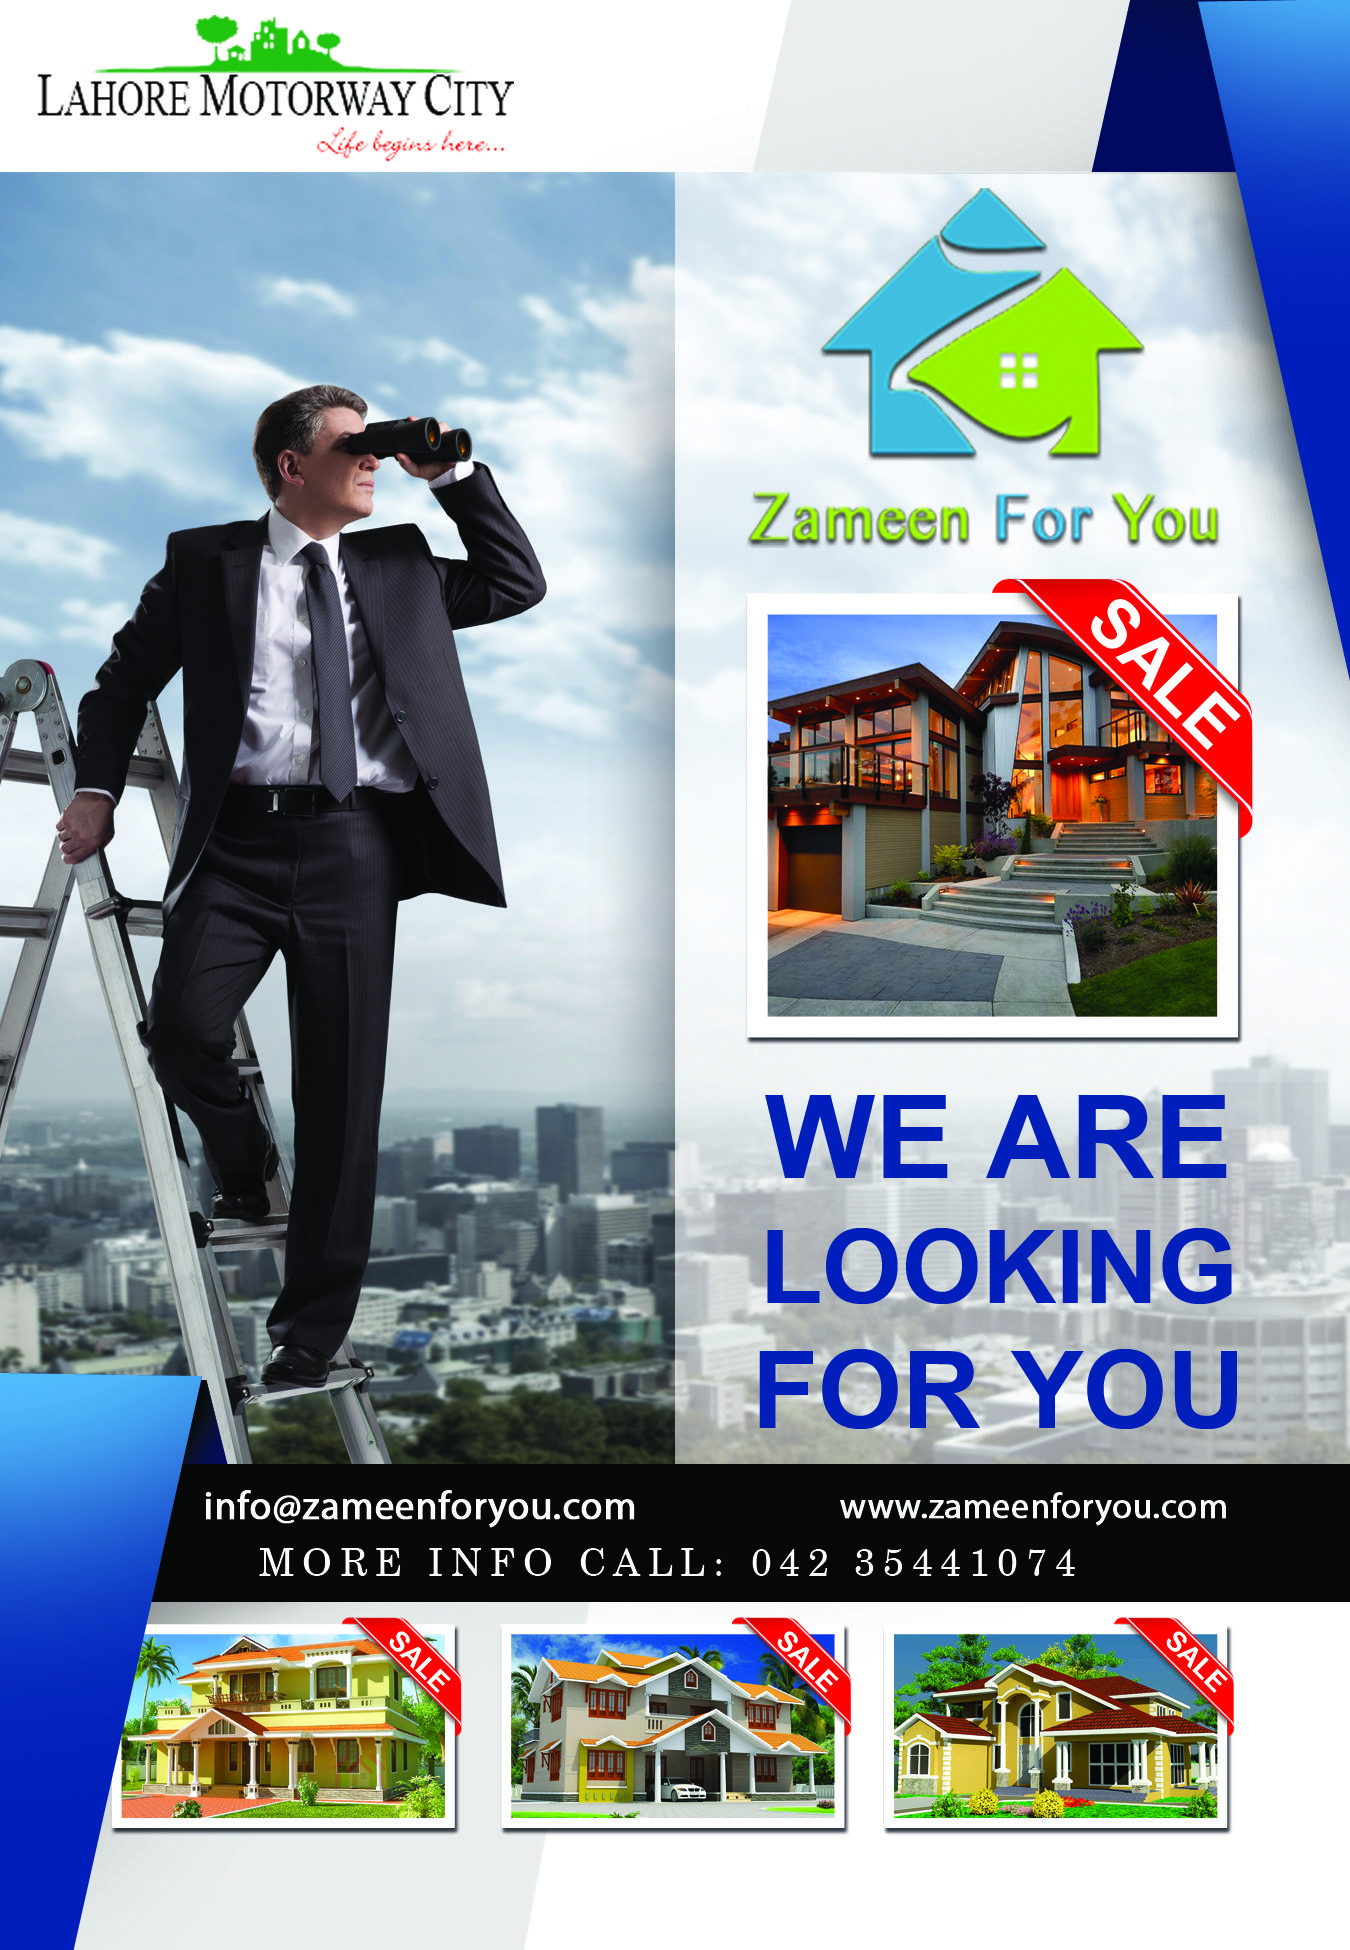 Zameen For You Shop house, Office flats, City